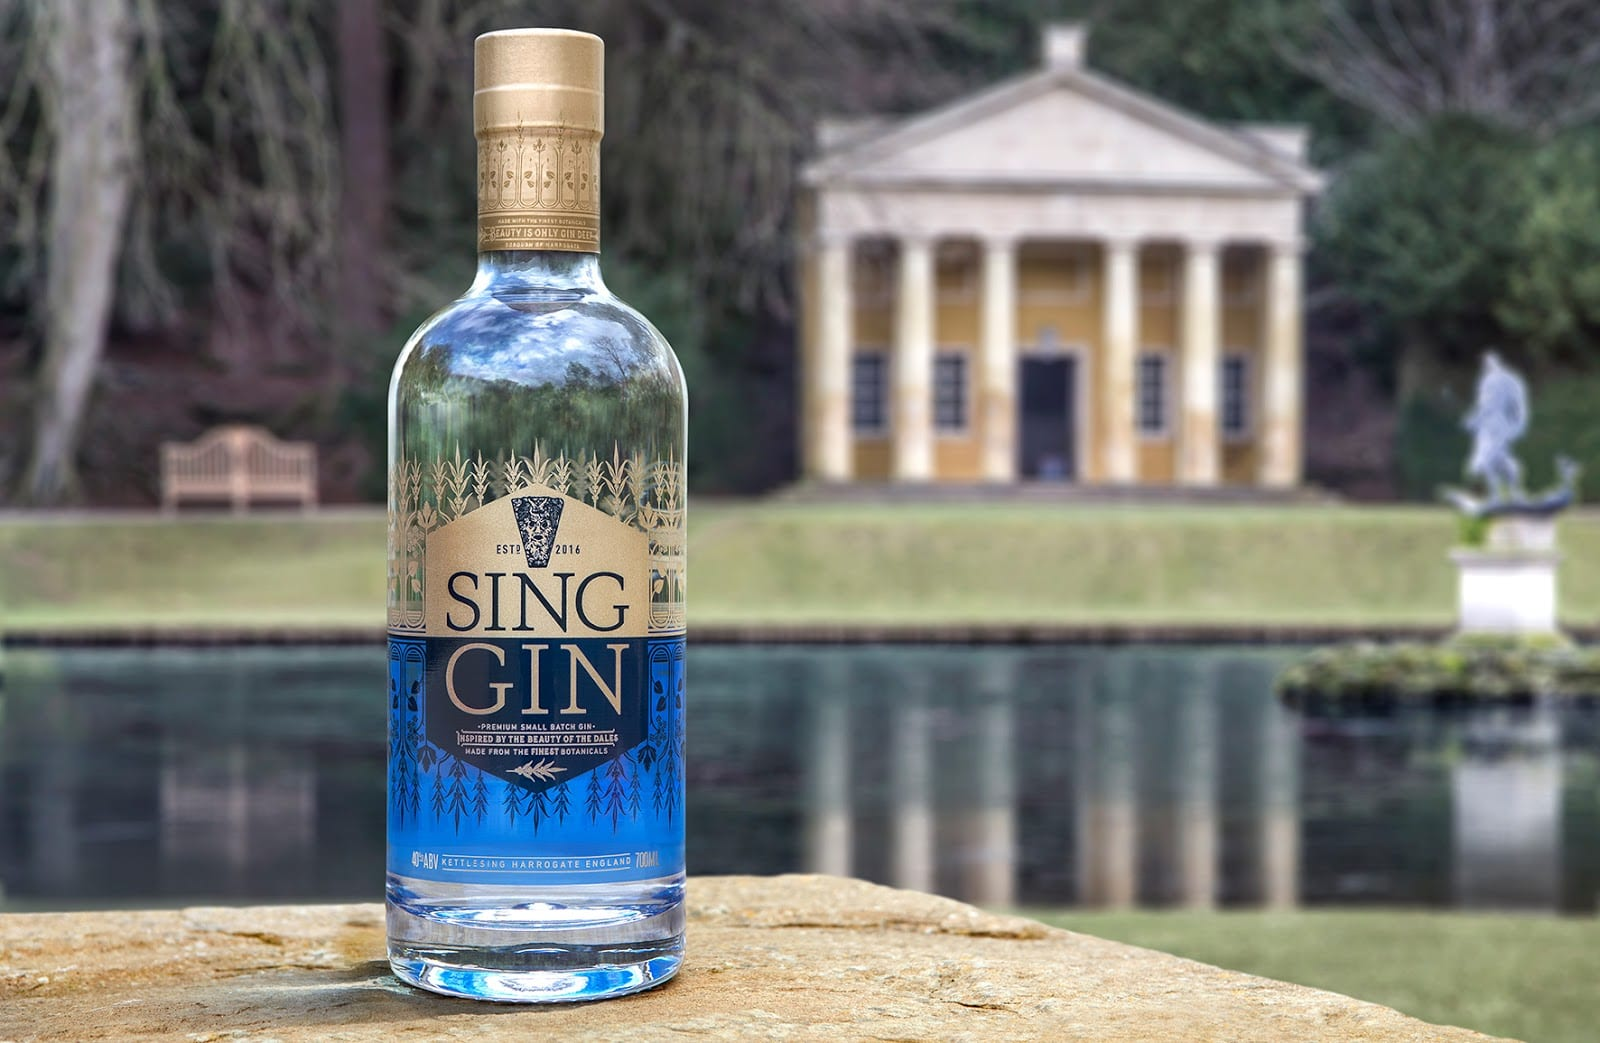 Sing Gin 06 - Ach, tie obaly – Sing Gin